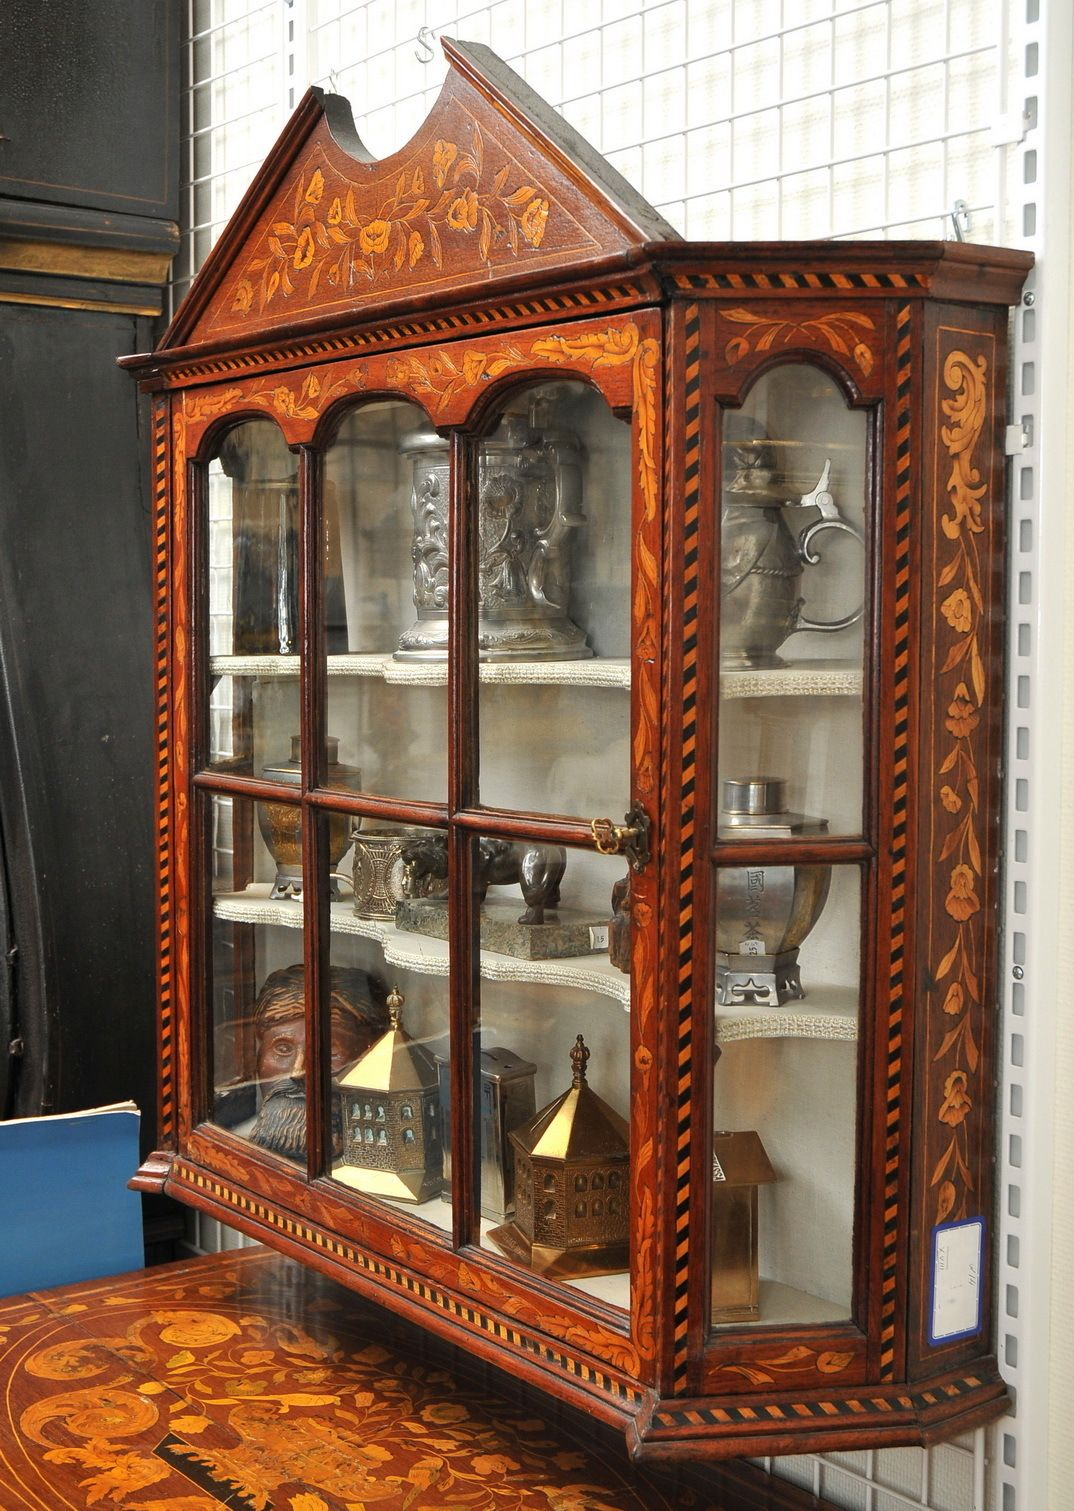 Amazing Hanging China Cabinet #9 - Inlaid Dutch Hanging Cupboard Display Marquetry Wall Cabinet C 1700 Antique  35u201dH | EBay